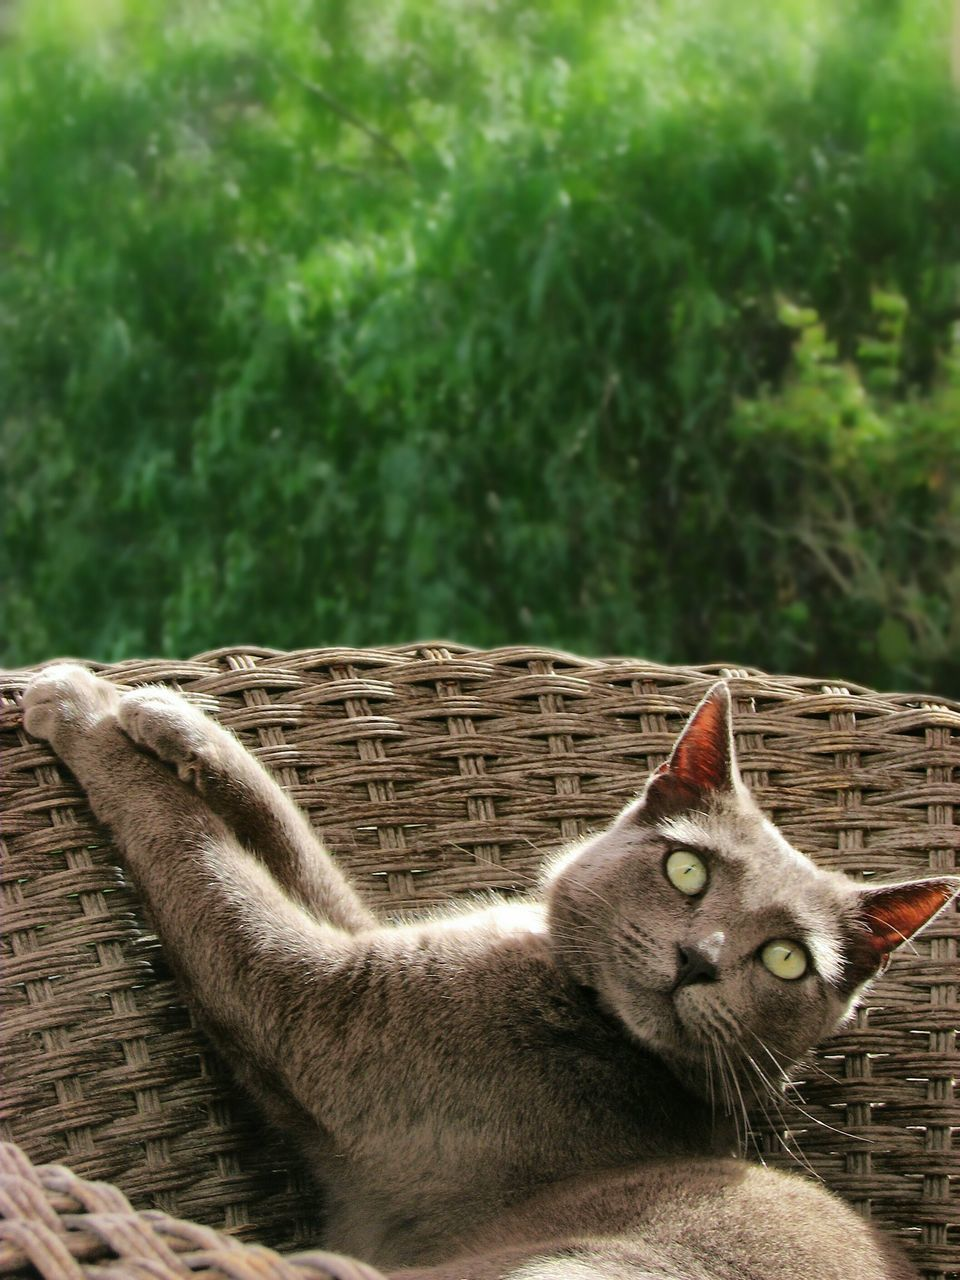 domestic, mammal, pets, cat, domestic cat, domestic animals, feline, one animal, relaxation, vertebrate, no people, day, nature, wood - material, whisker, tree, plant